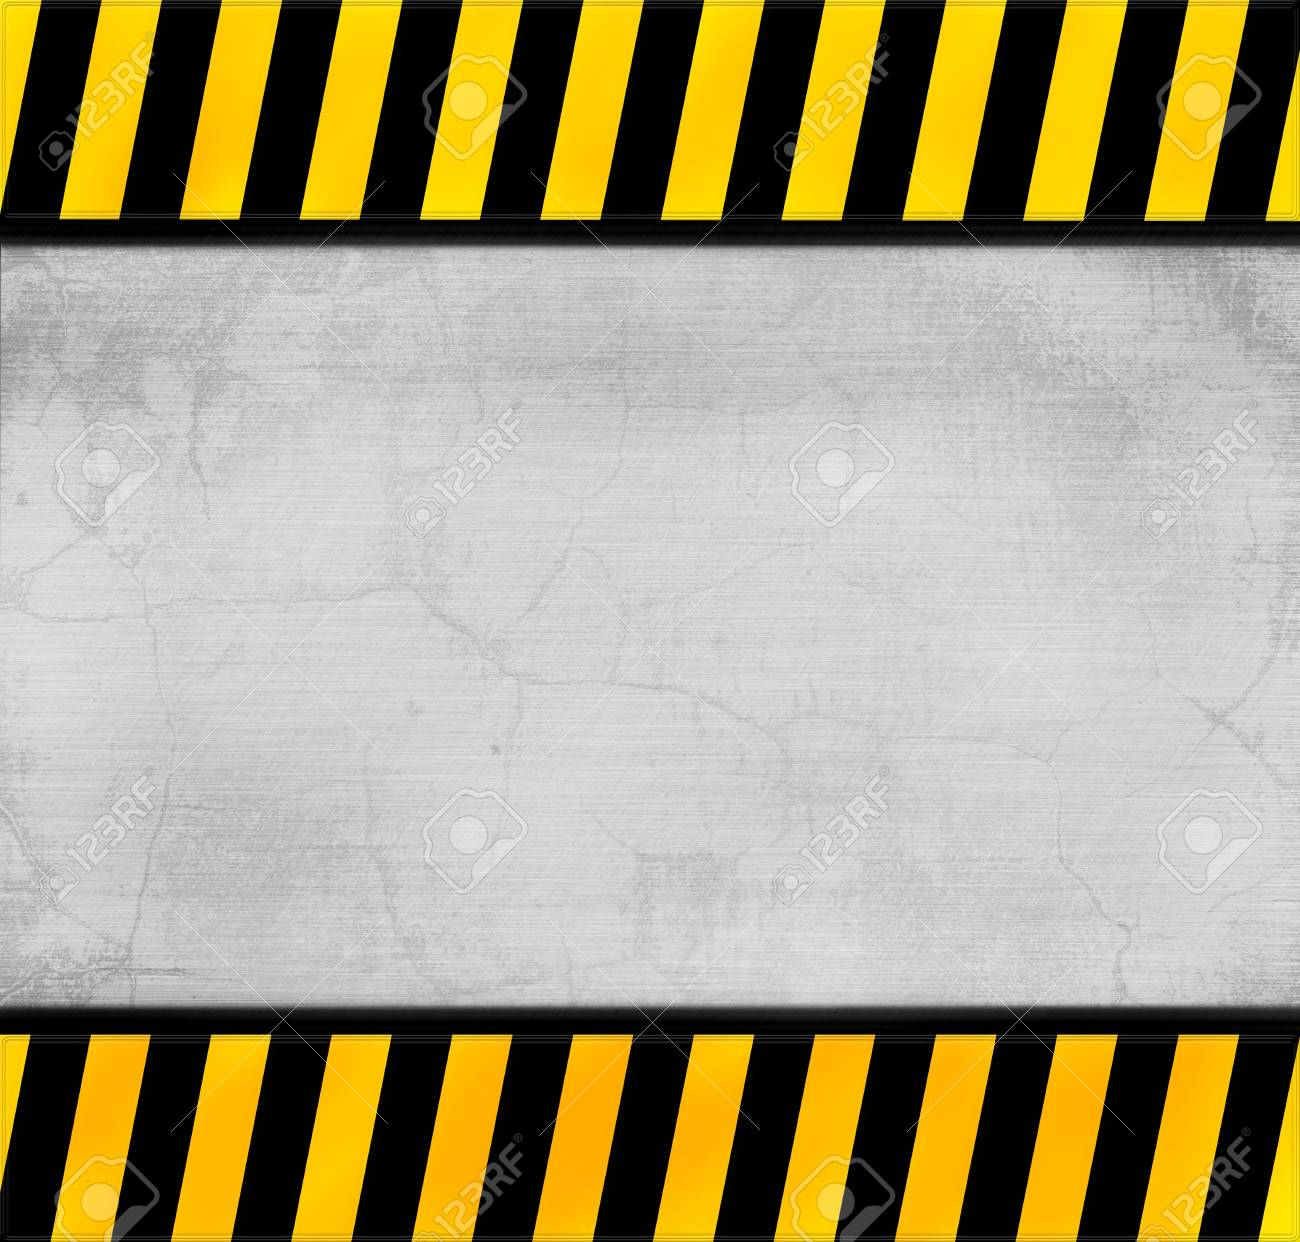 metal warning template for you project Stock Photo - 12951533